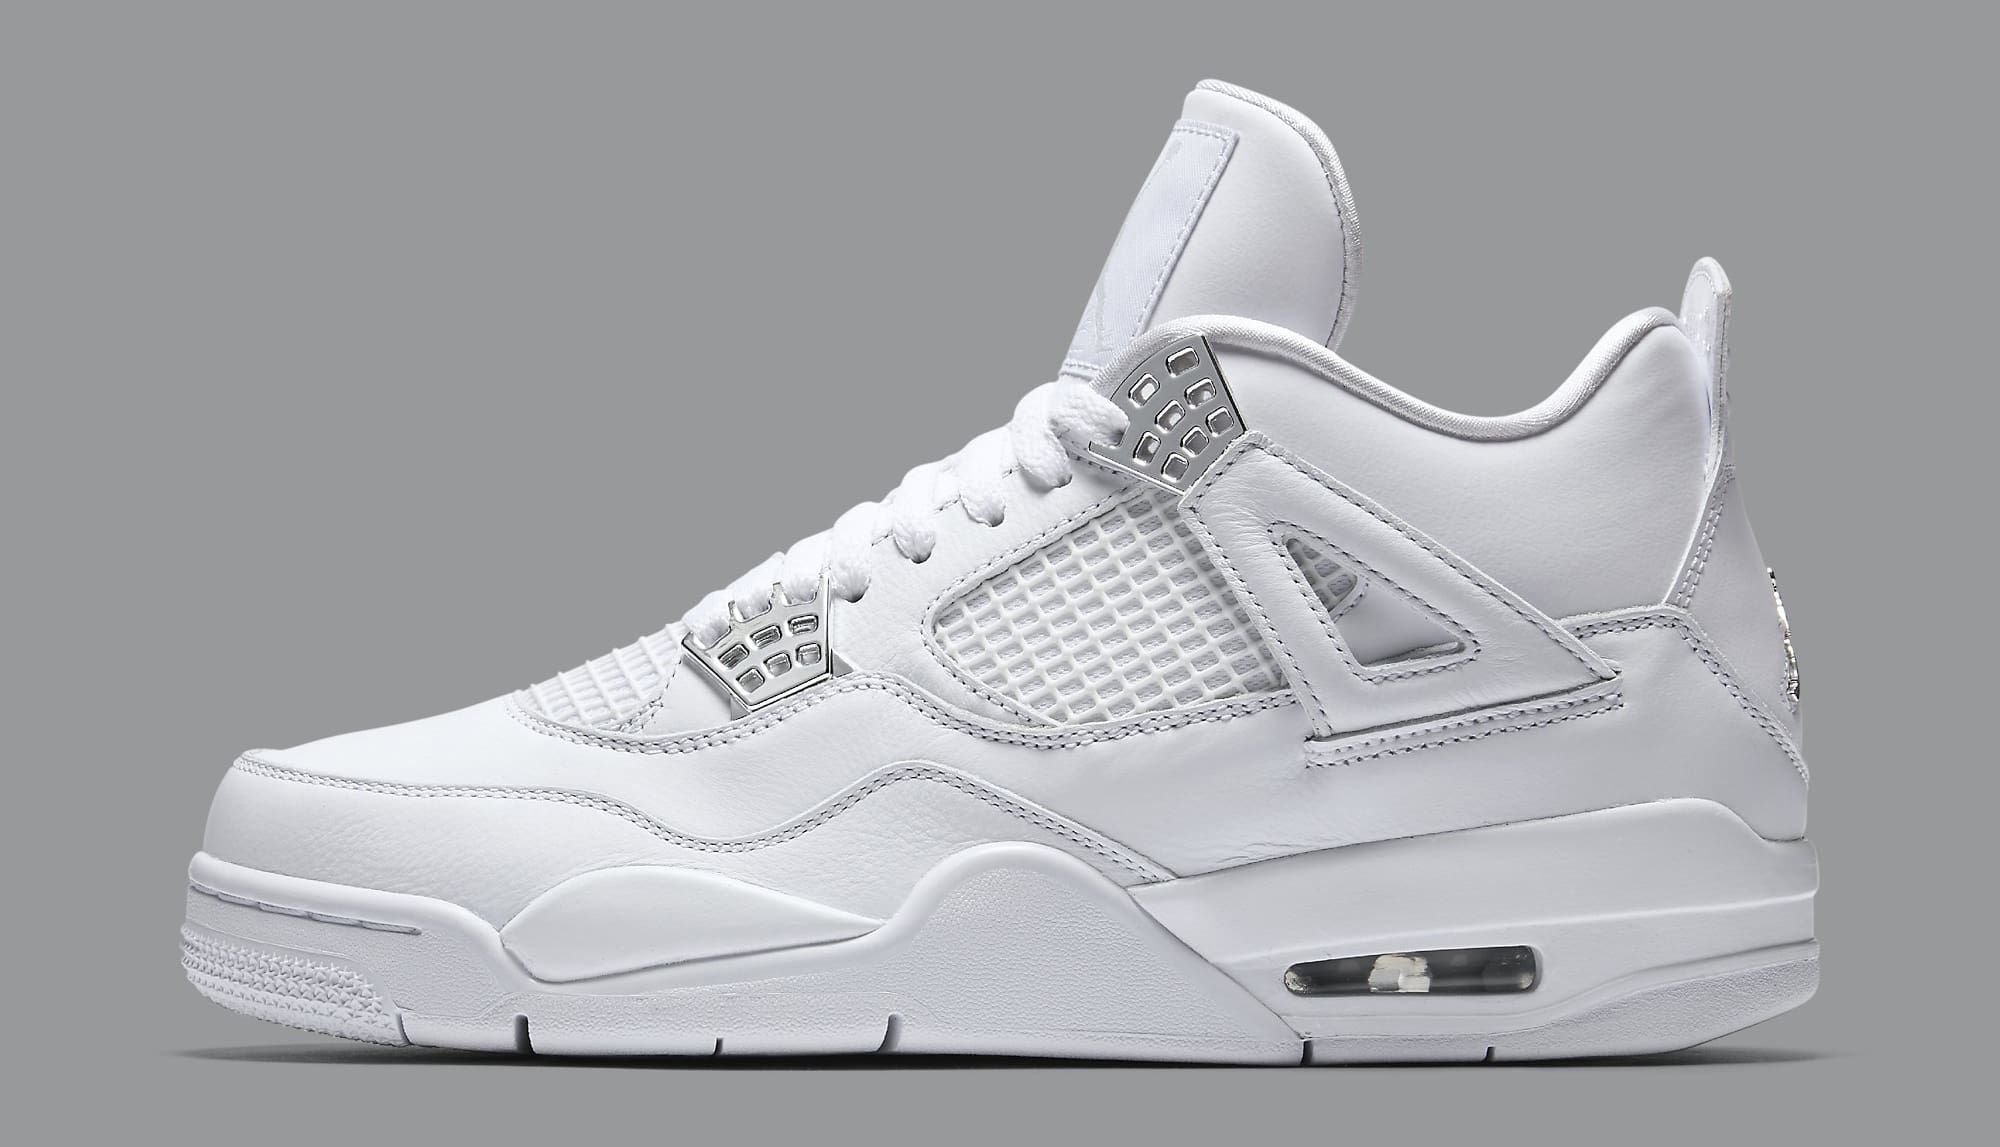 Nike Air Jordan IV Retro Pure Money Boys Basketball shoes High